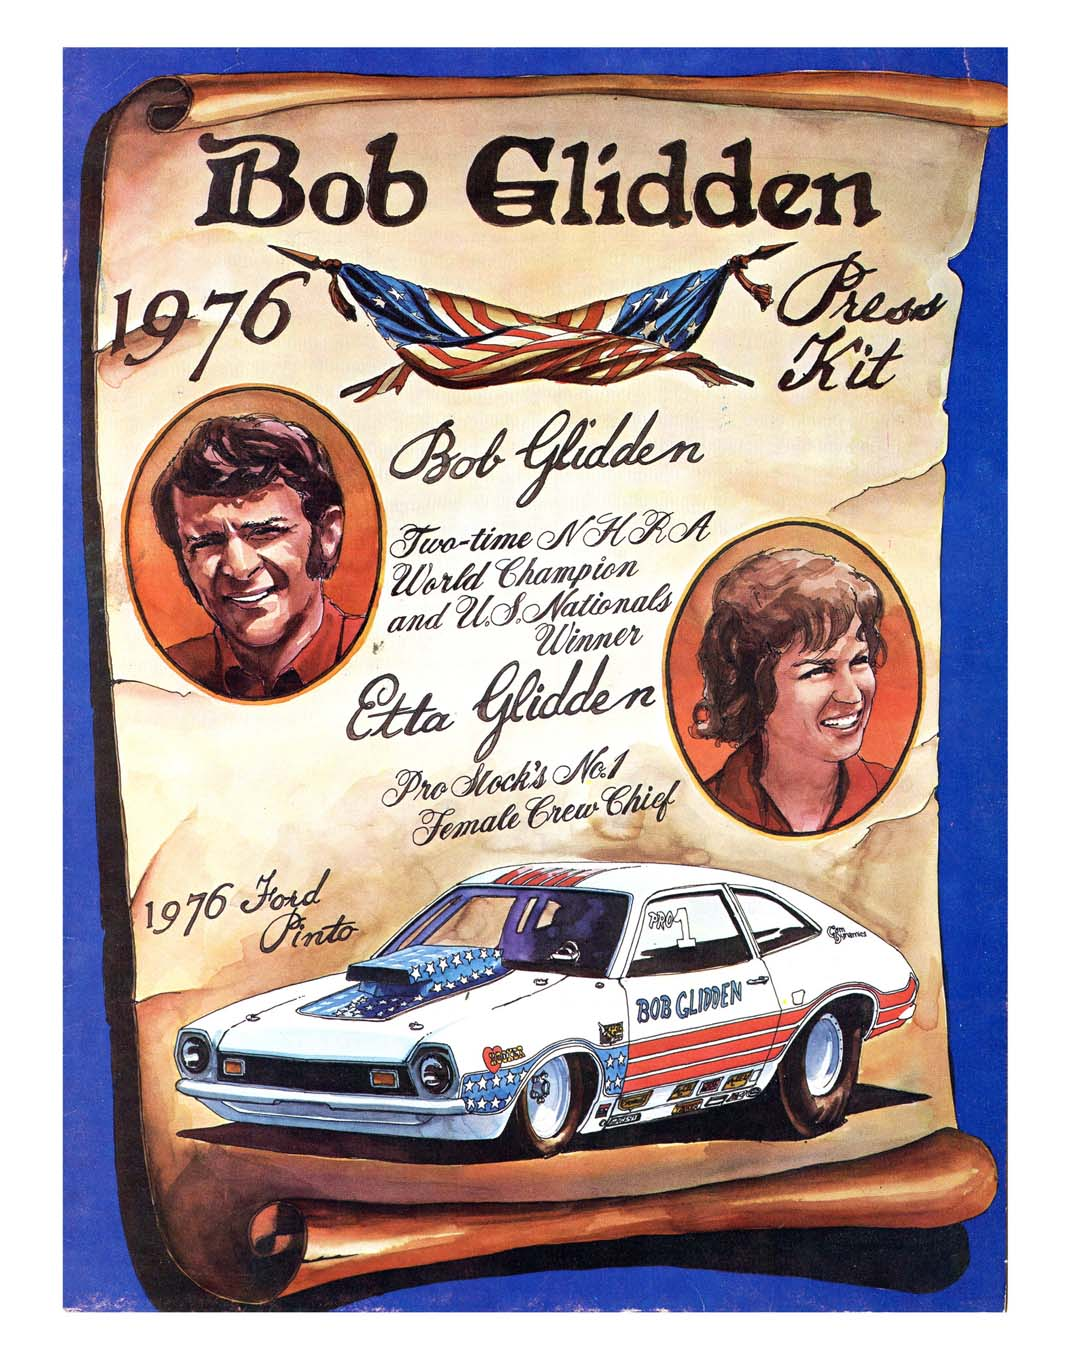 This press-kit cover for Bob Glidden featured the bicentennial theme that was so prevalent during the 1976 season.